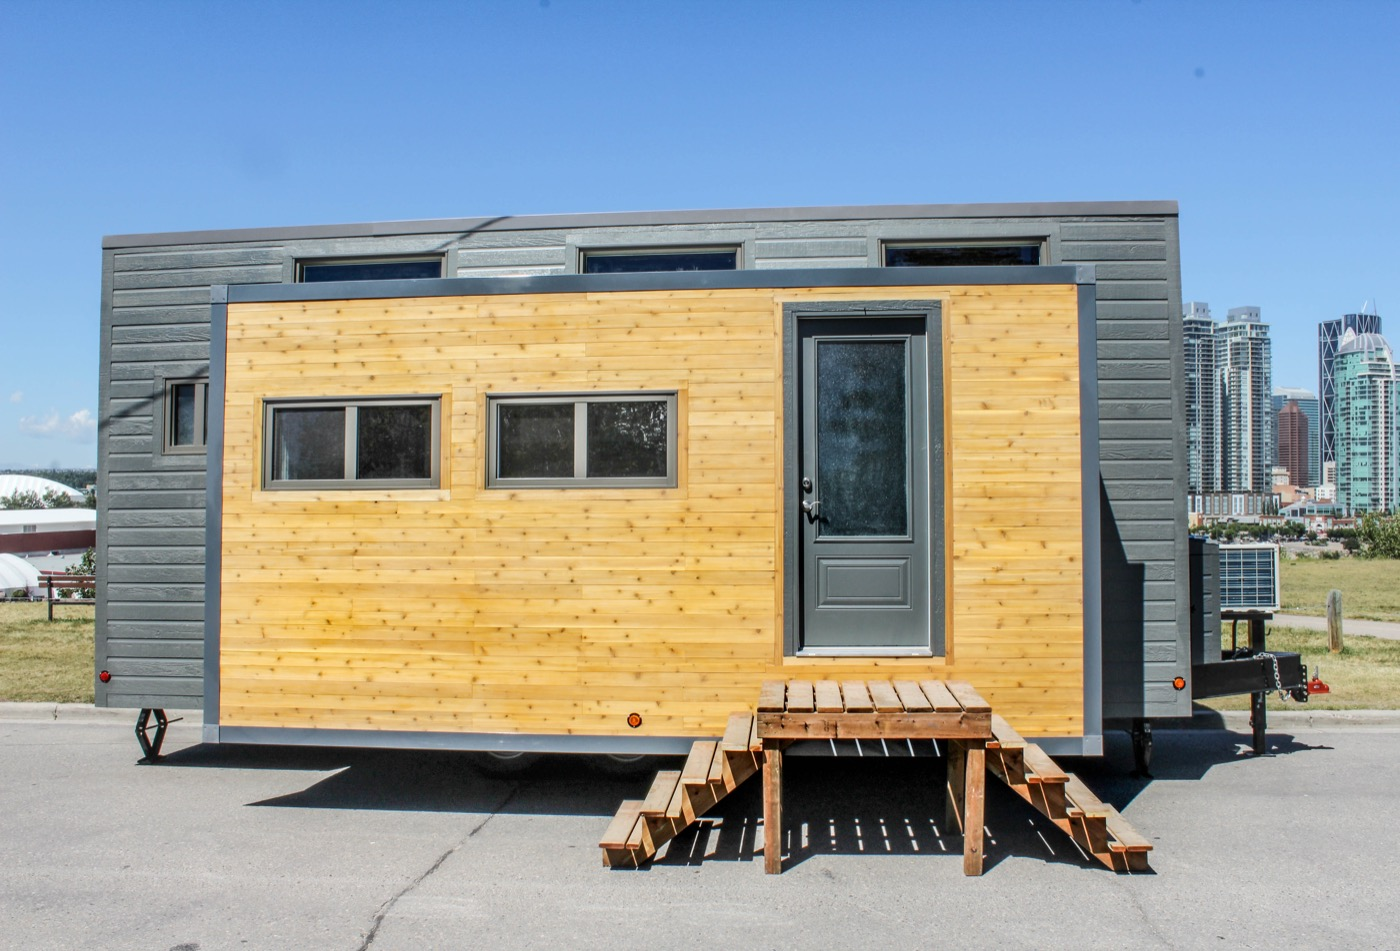 Expanding Tiny House On Wheels With Huge Slide Outs: Expands With The Touch  Of A Button!